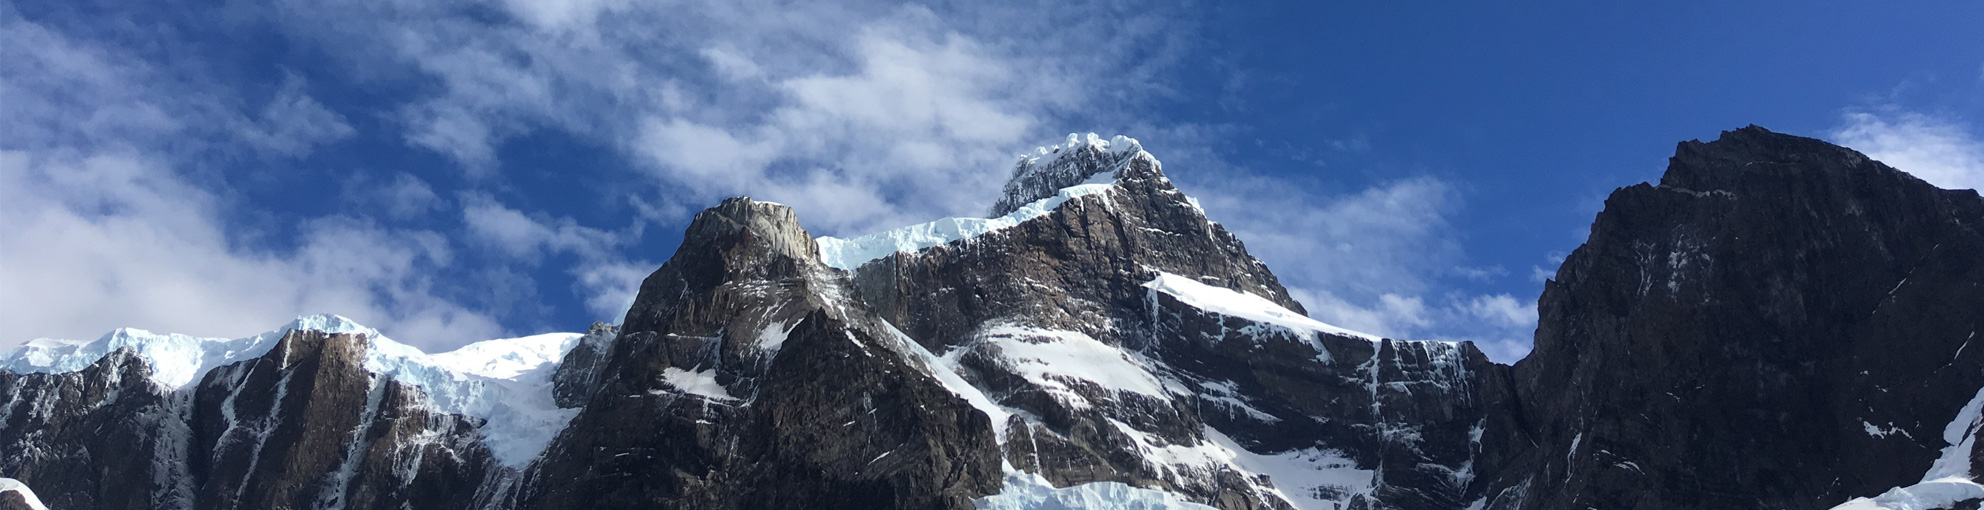 paine-grande-torres-del-paine-hello-patagonia-banner-short-w-circuit